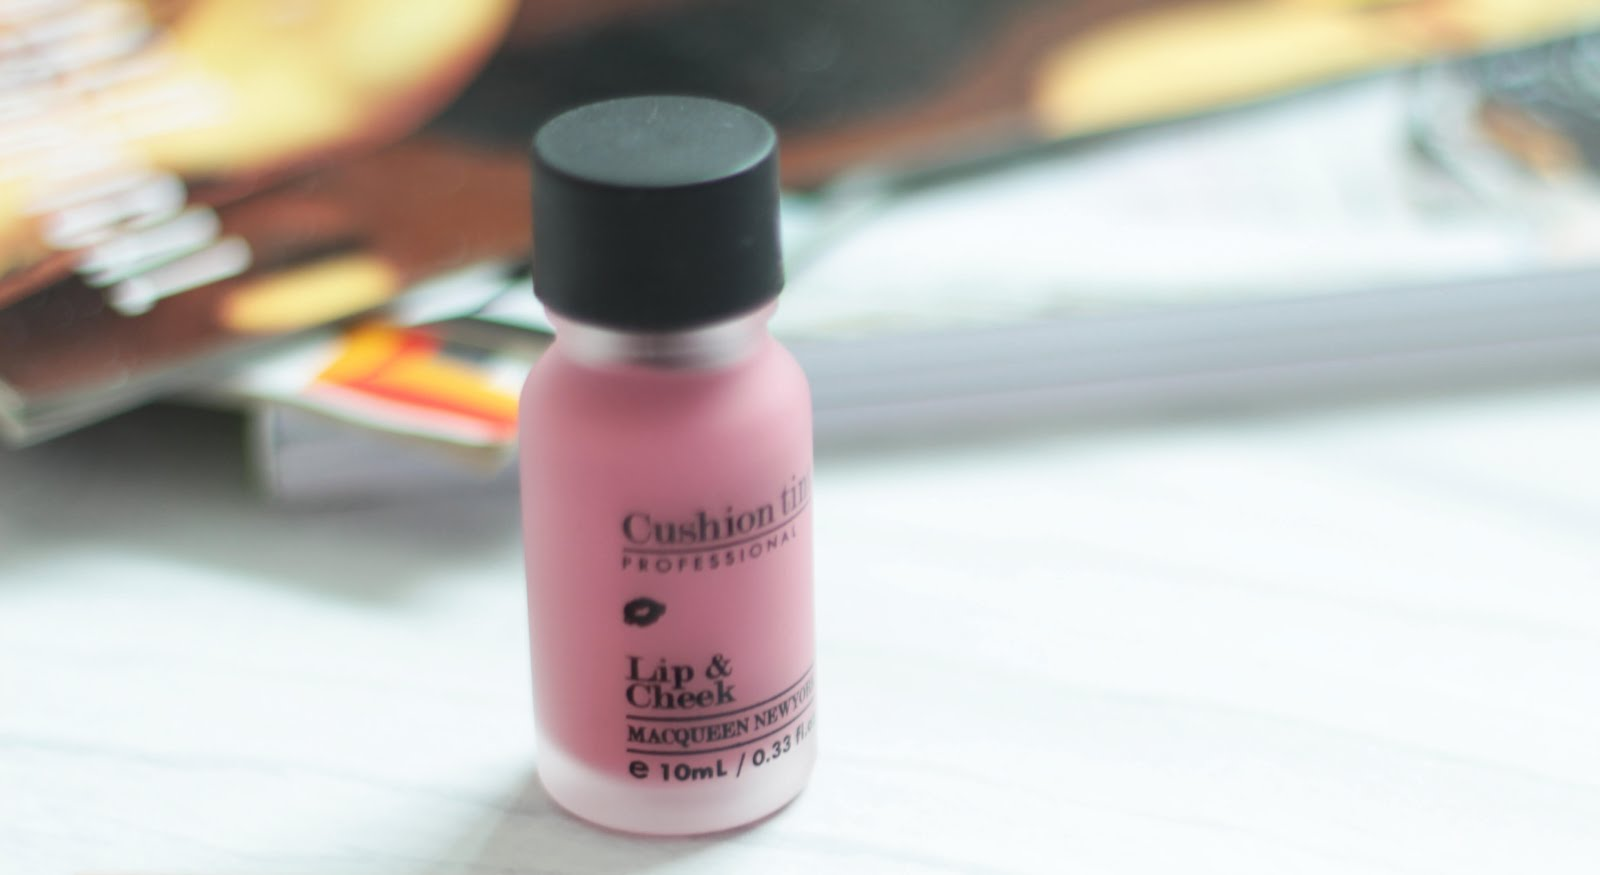 macqueen new york korean beauty lip and cheek tint review first impressions